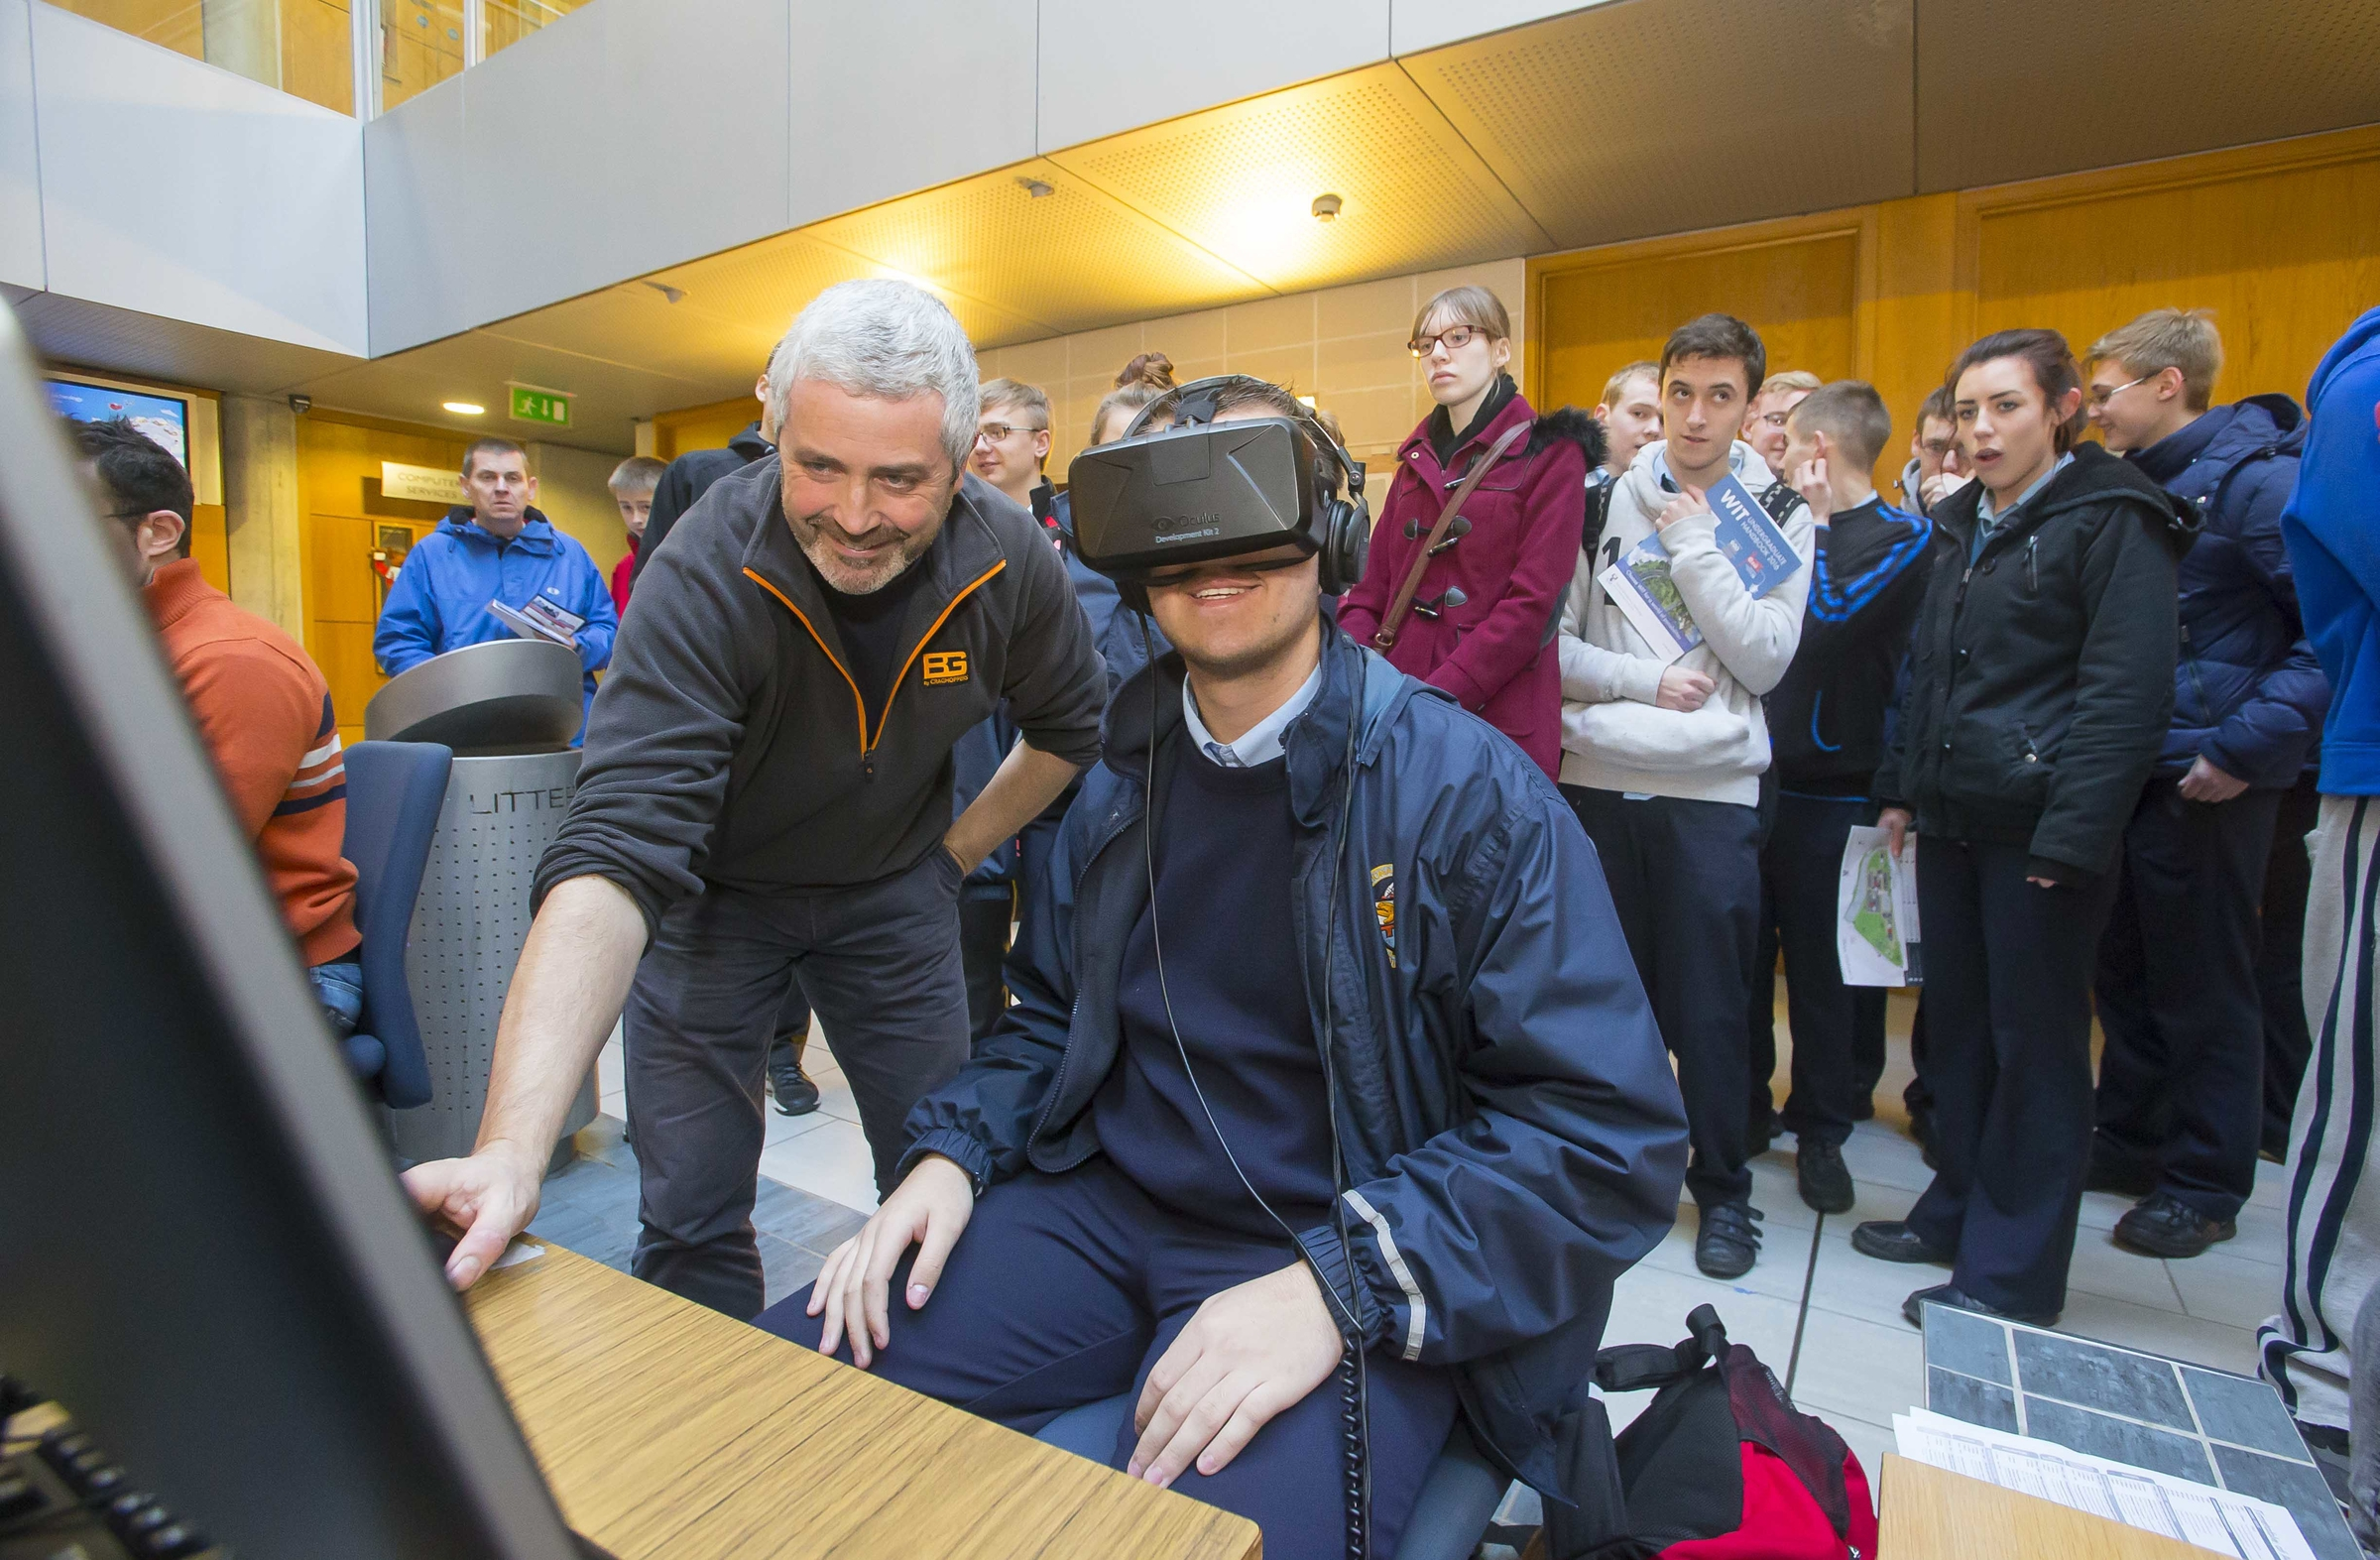 A student tries out VR (Virtual Reality) as part of 2015 Schools' Open Day